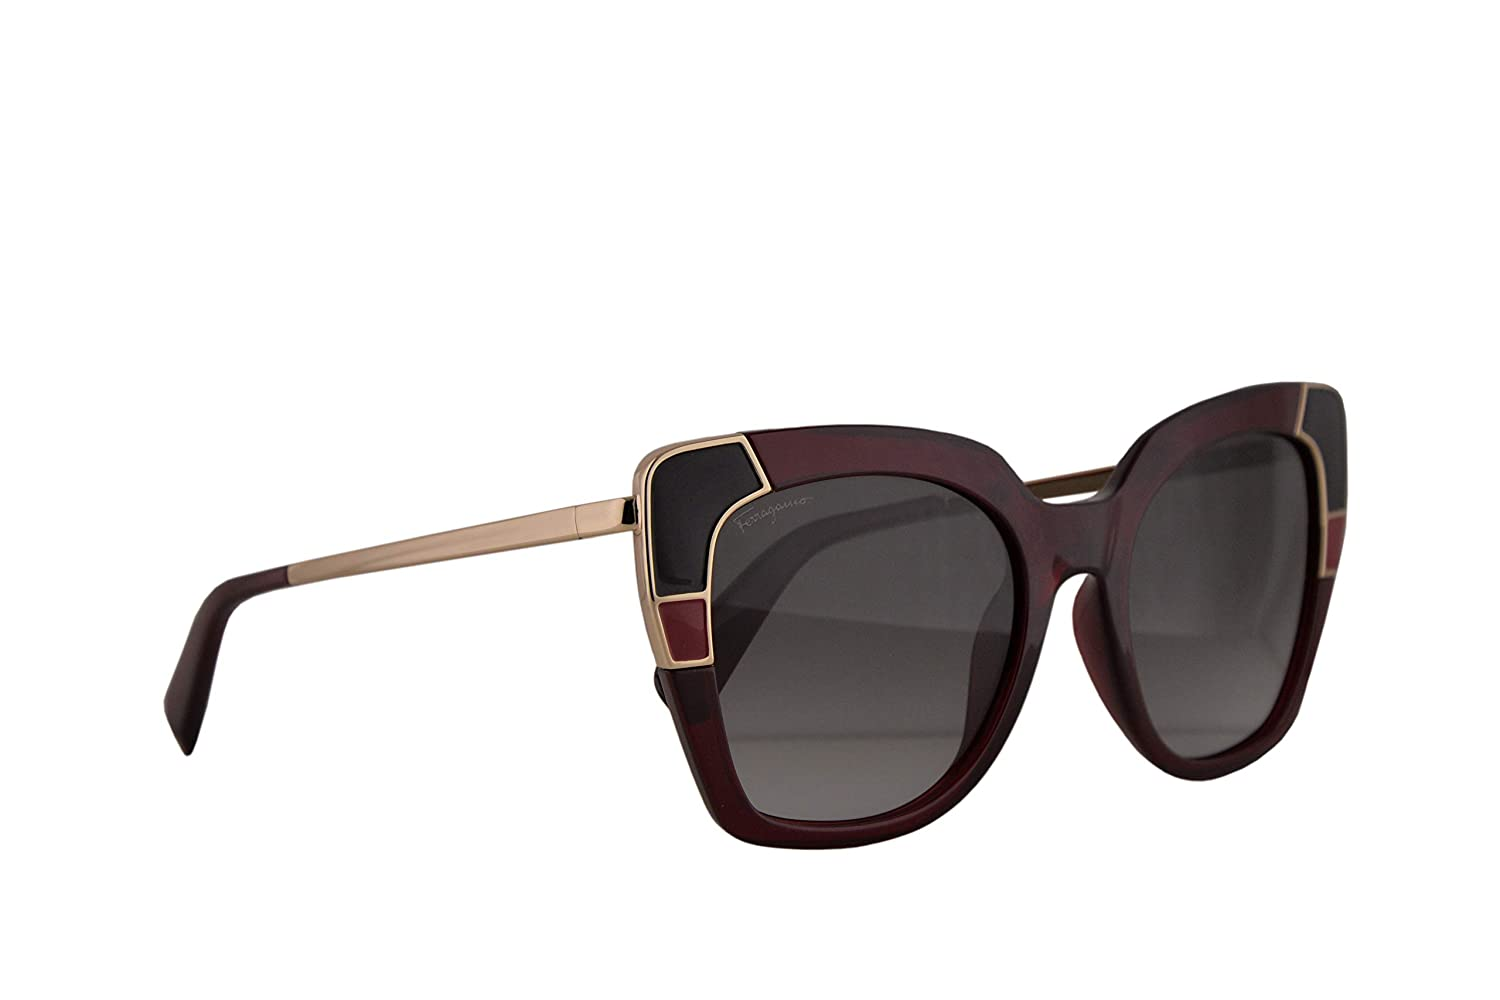 Amazon.com: Salvatore SF889S Ferragamo - Gafas de sol ...